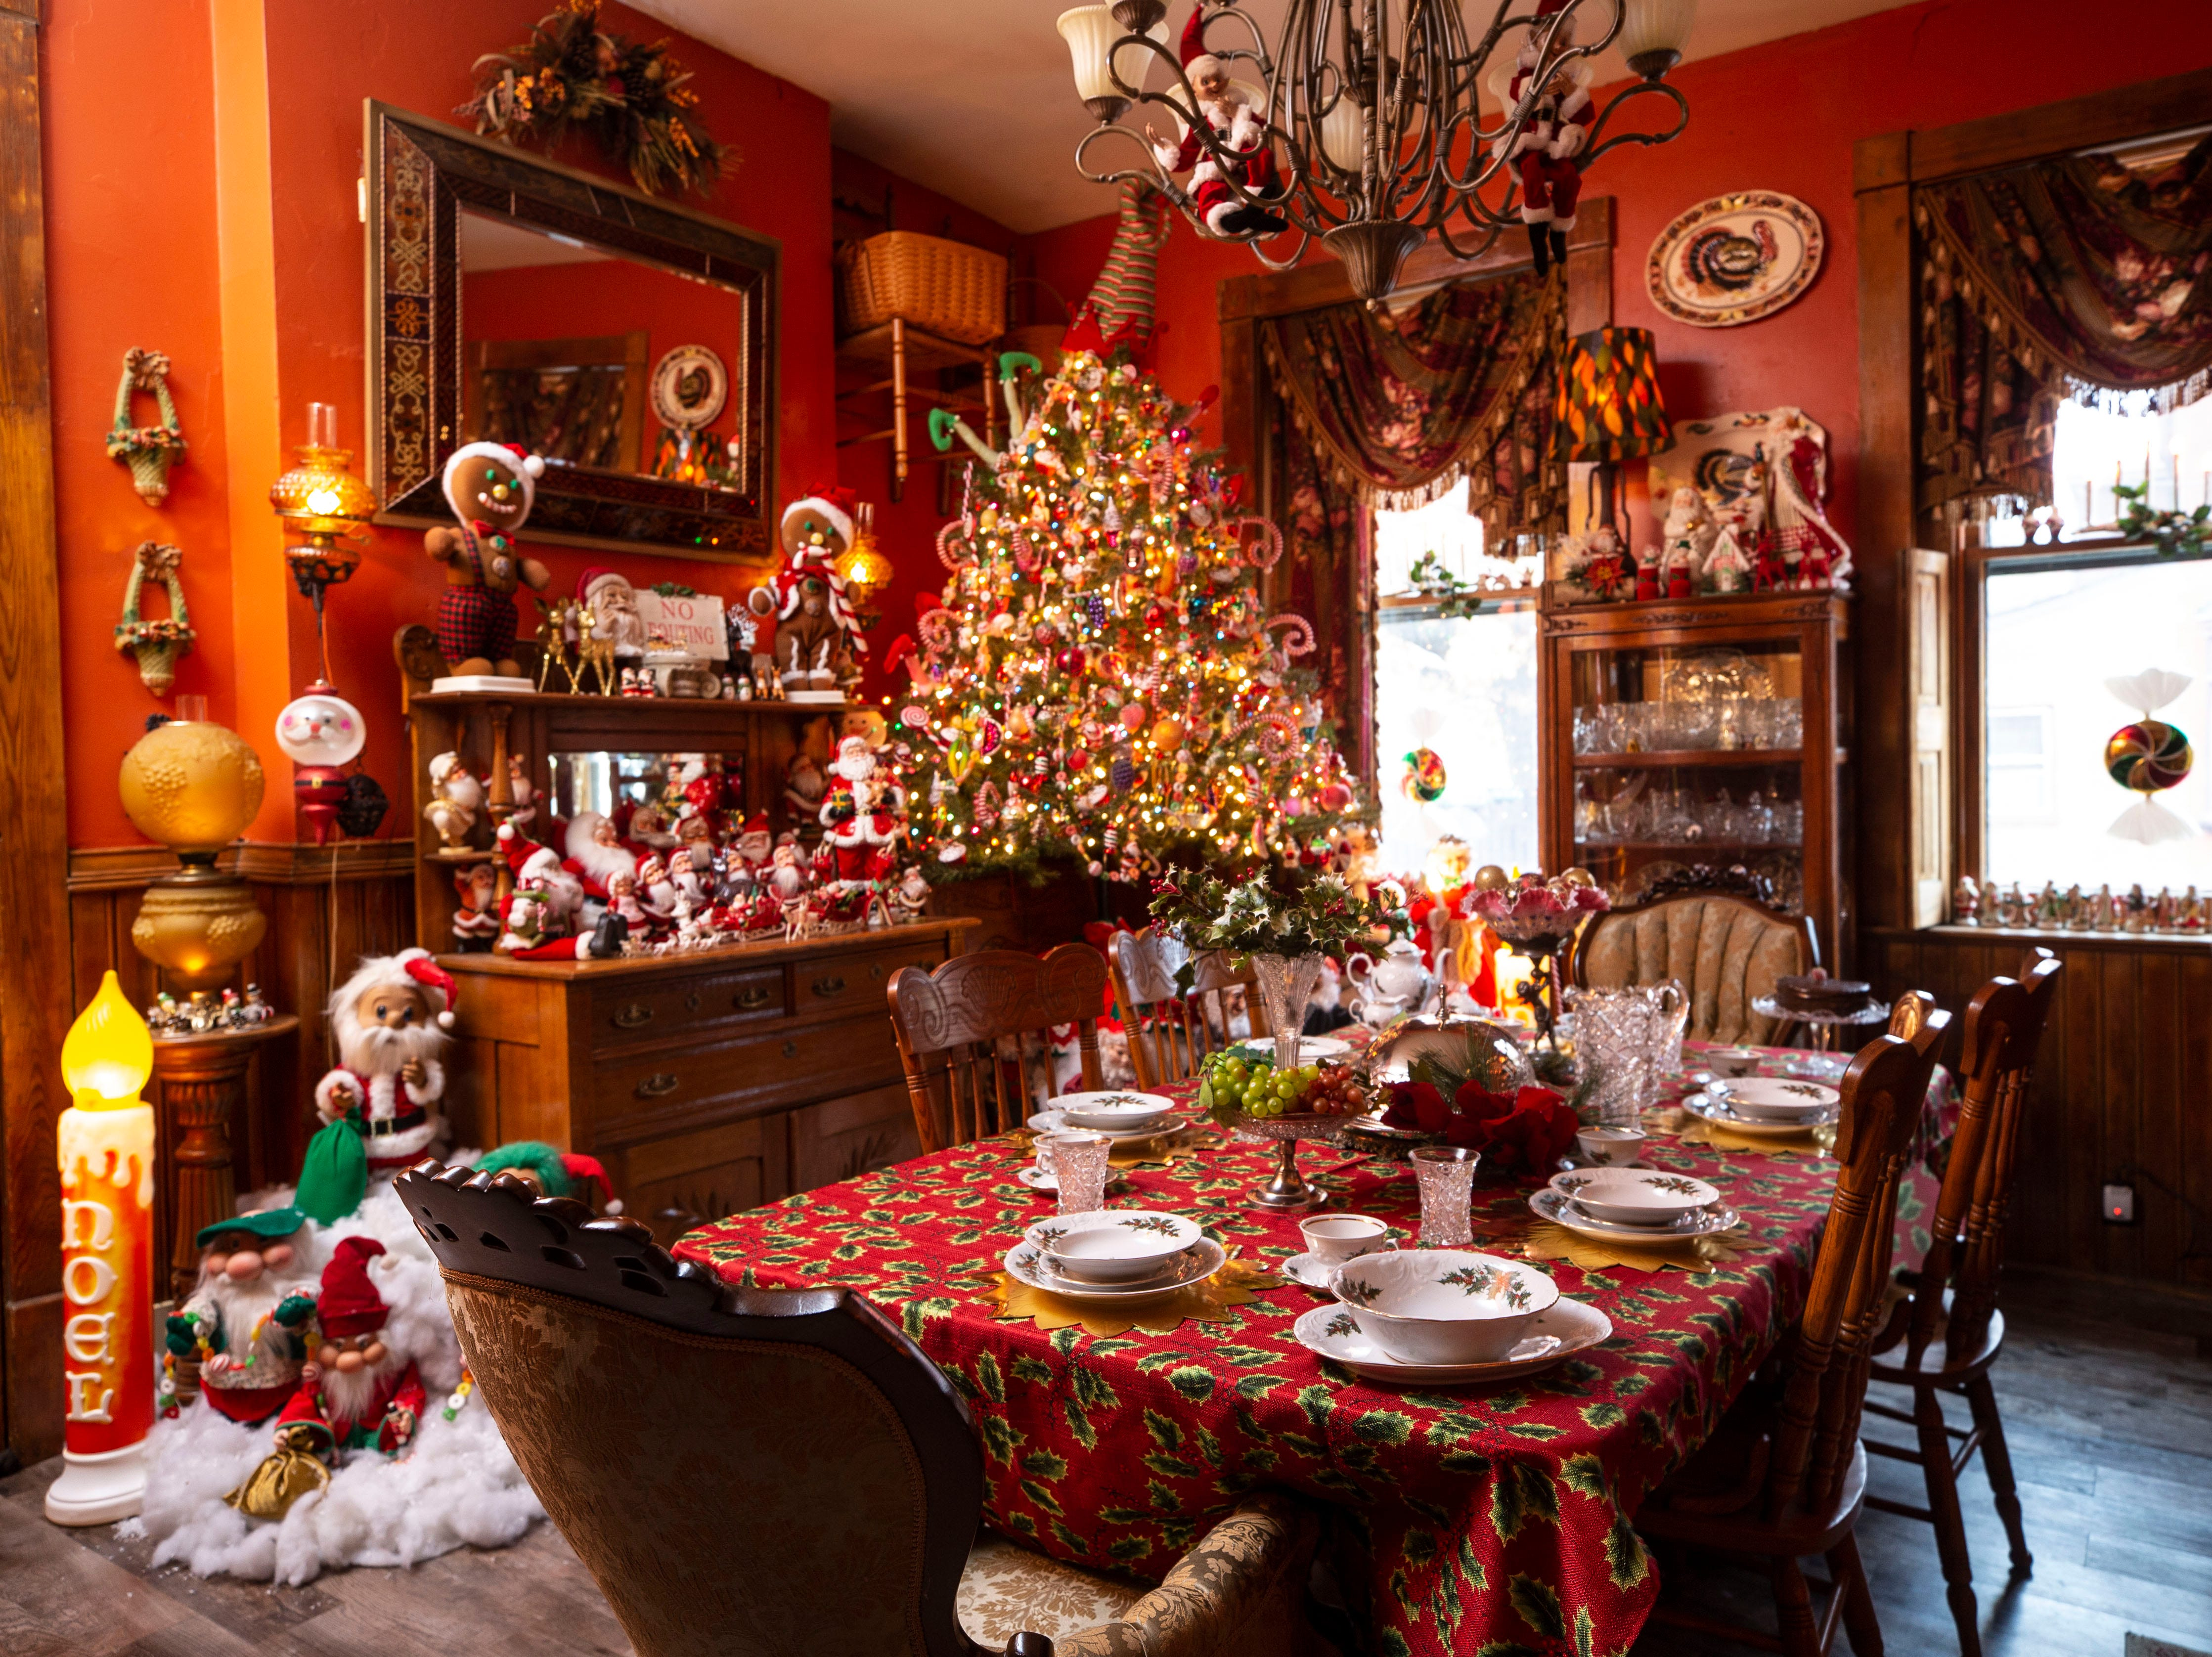 """""""Christmas is a wonderful time of year and I've been very blessed and I like to share what Christmas means to me to other folks,"""" said homeowner David Brown. His kitchen has dozens of vintage decorations."""